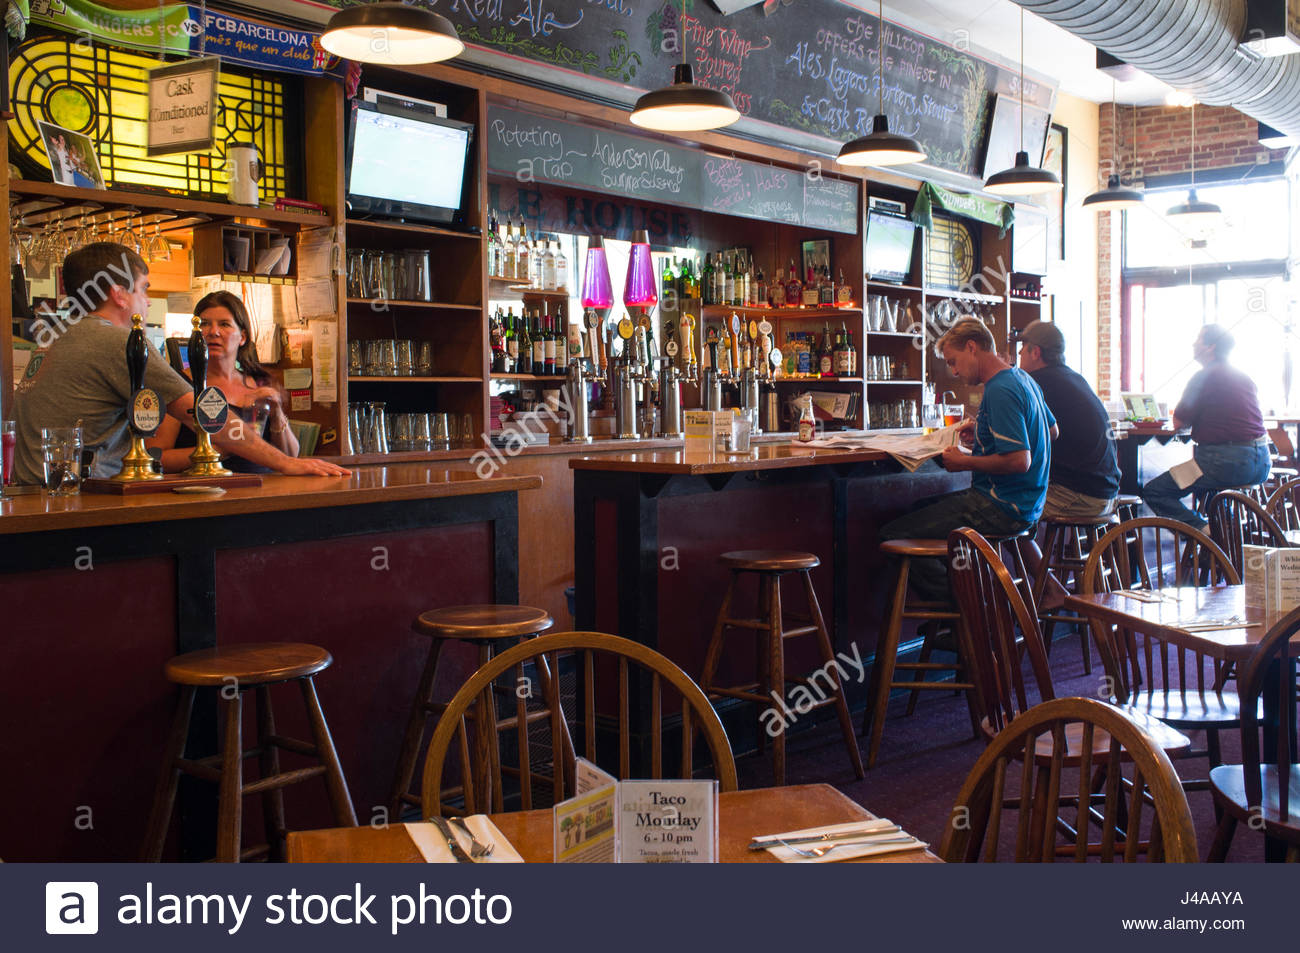 People Sitting At The Bar Inside Hilltop Ale House 2129 Queen Anne